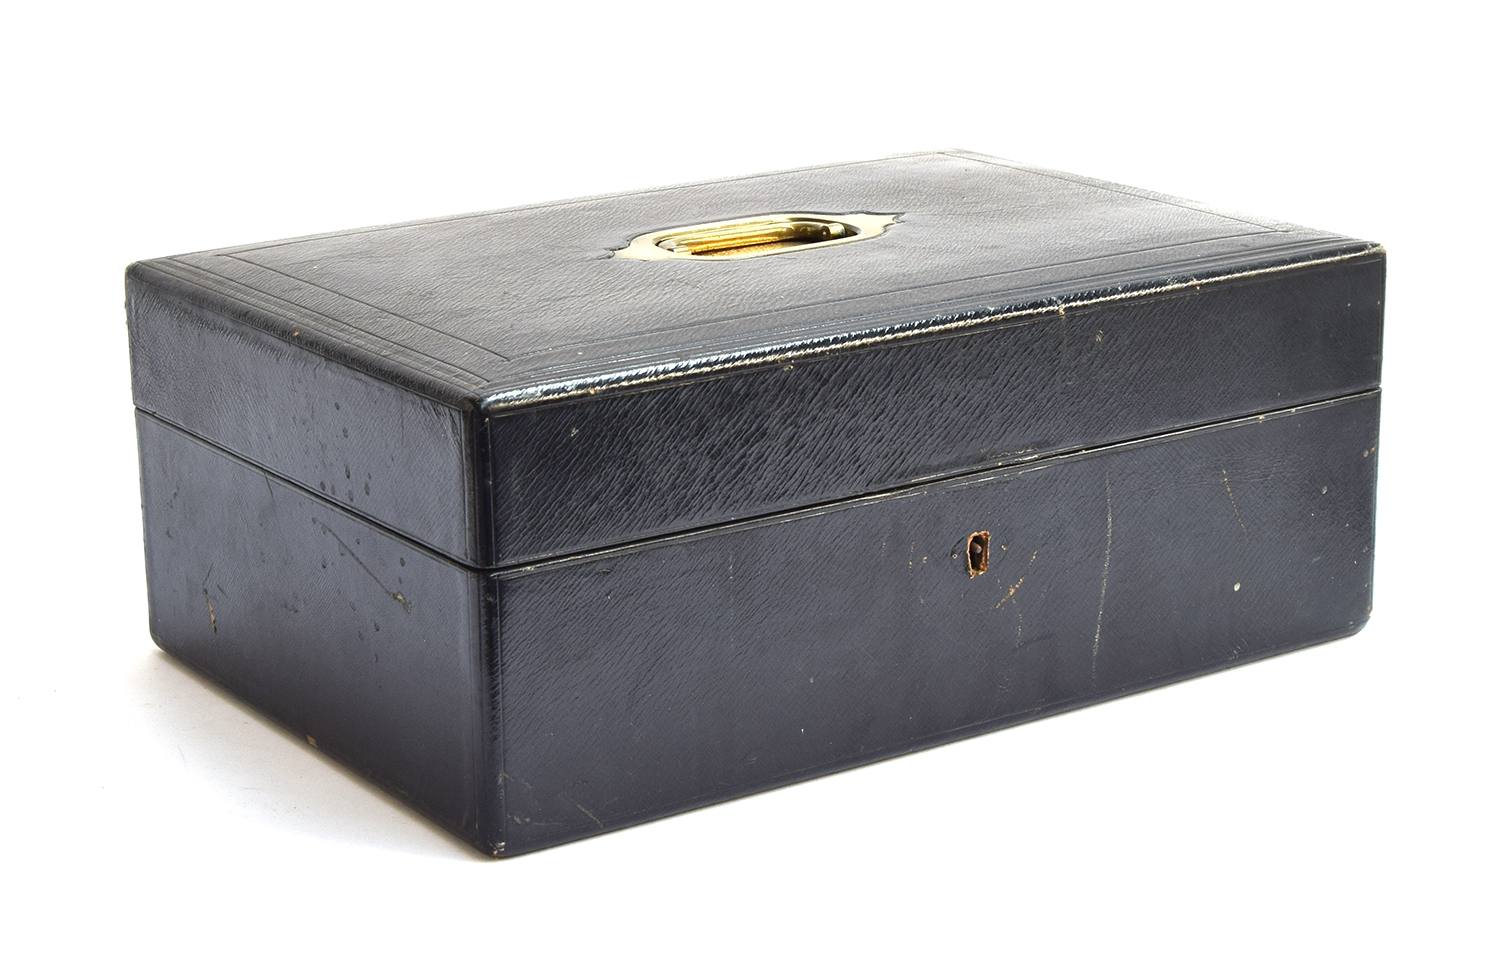 A black leather writing box by Bickers & Son, 54 Leicester Square, the brass plaque inscribed 'W.